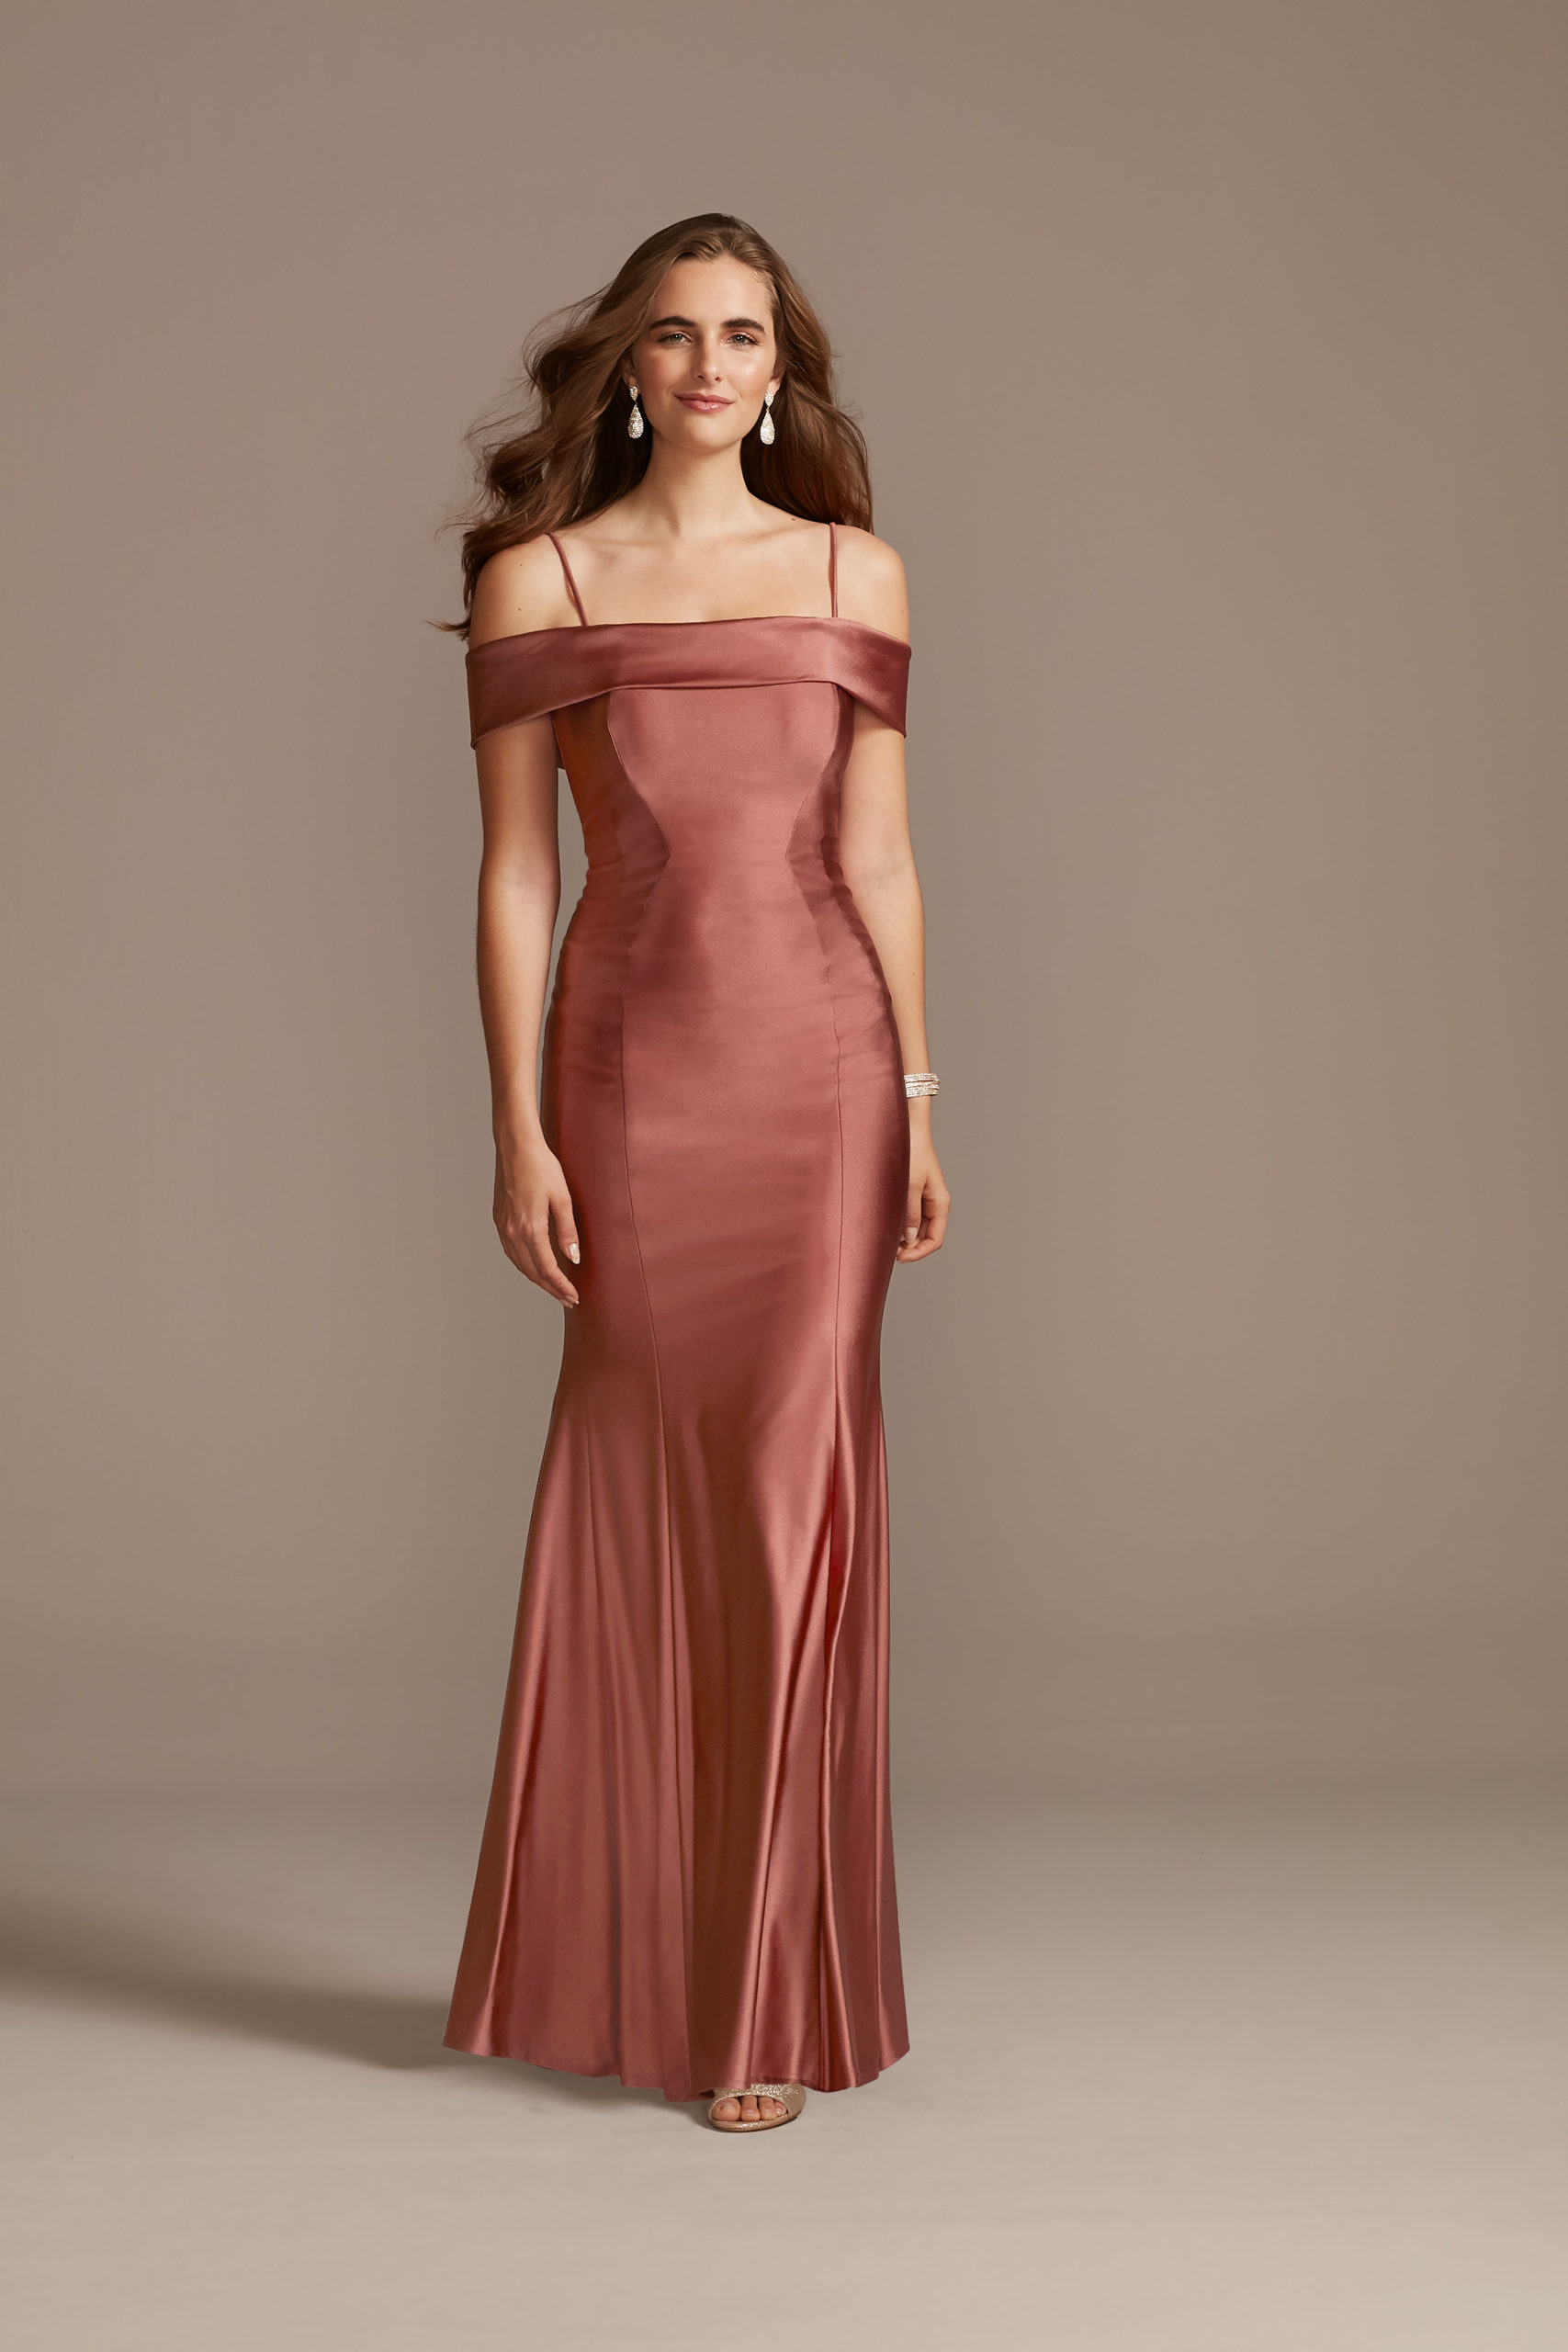 Off the Shoulder Satin Mermaid Gown with Bow